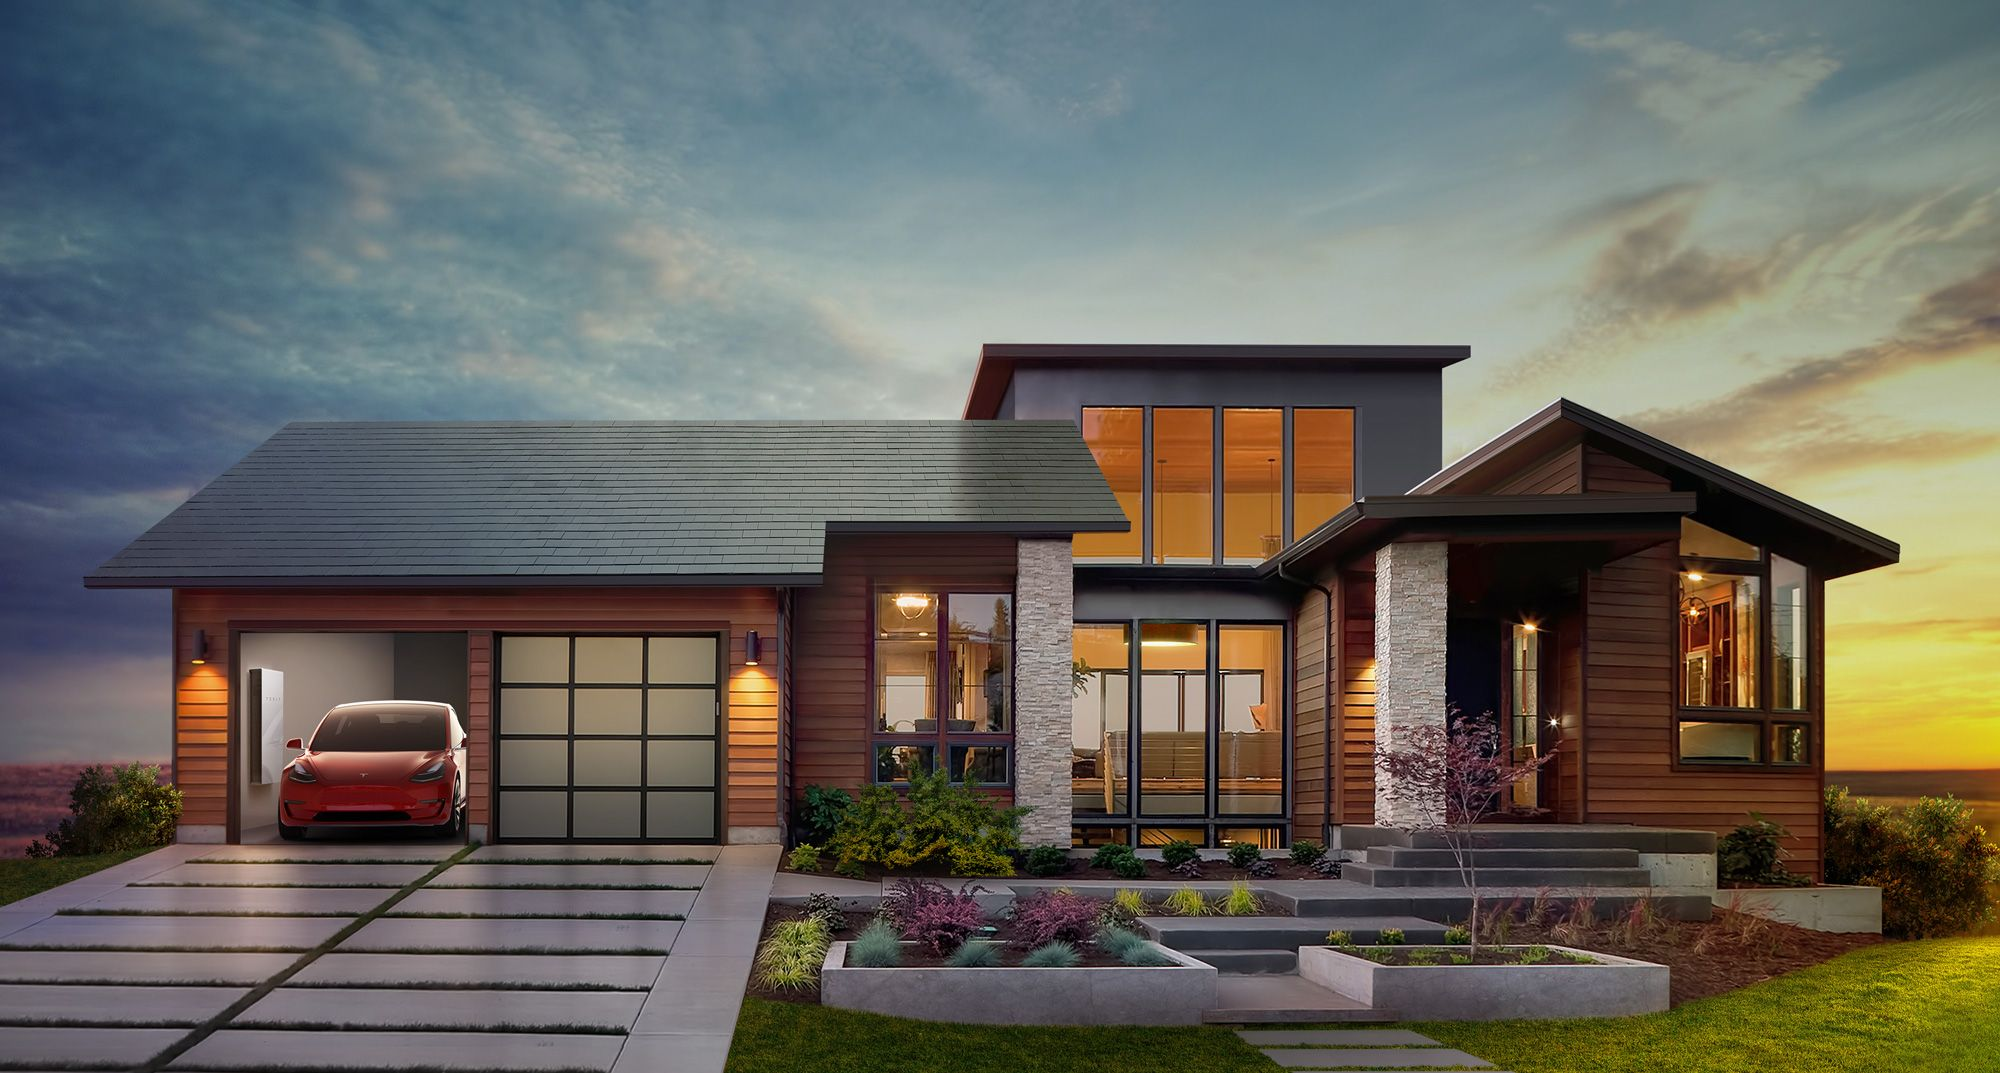 How Much Will A Tesla Solar Roof Cost On My Home Solar Roof Shingles Tesla Solar Roof Solar Roof